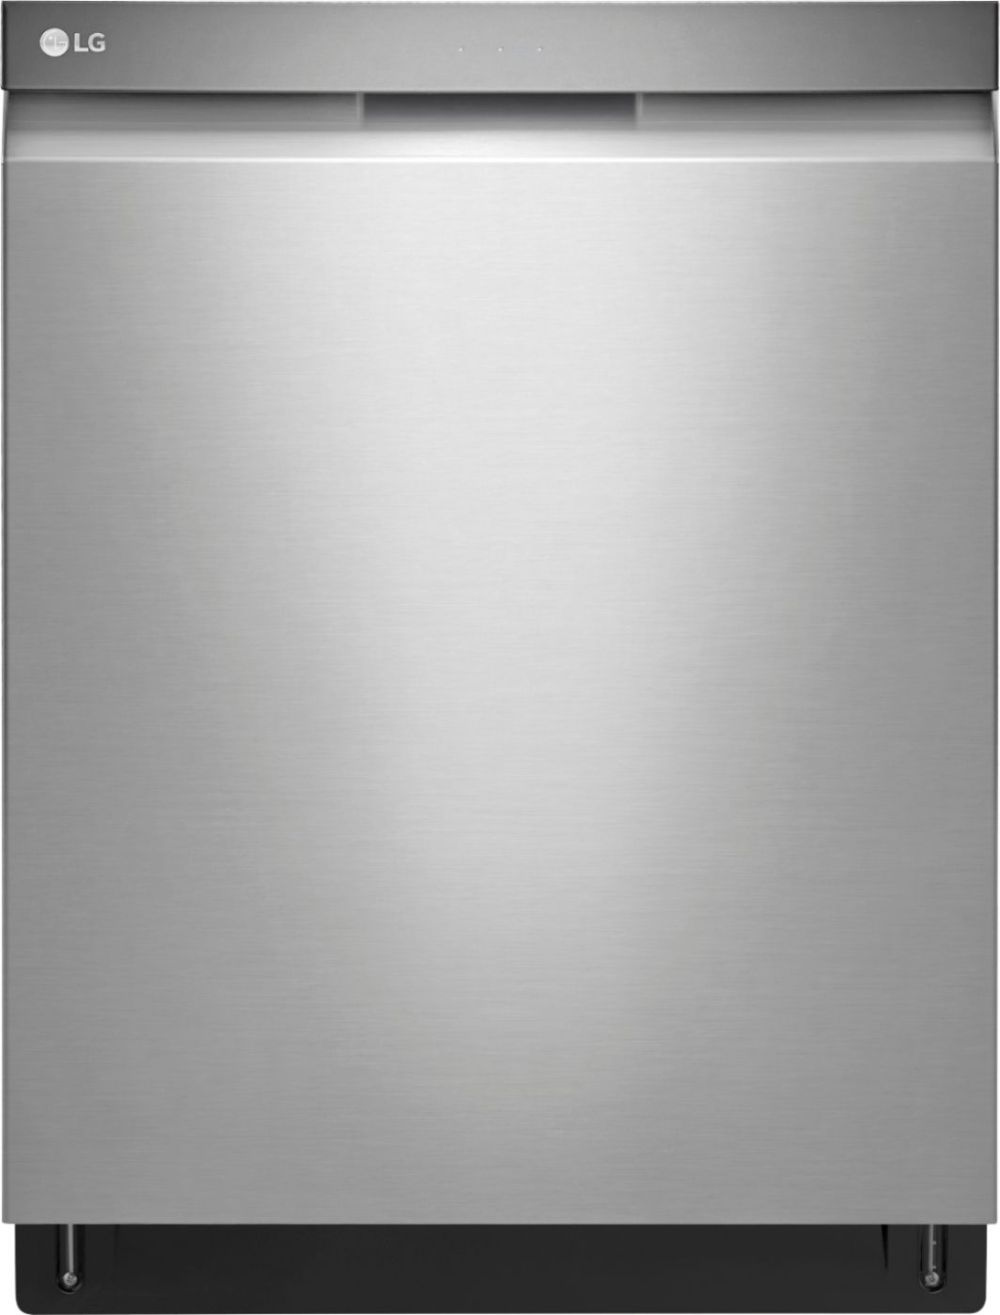 medium resolution of lg 24 top control smart wi fi enabled dishwasher with quadwash and stainless steel tub stainless steel ldp6797st best buy